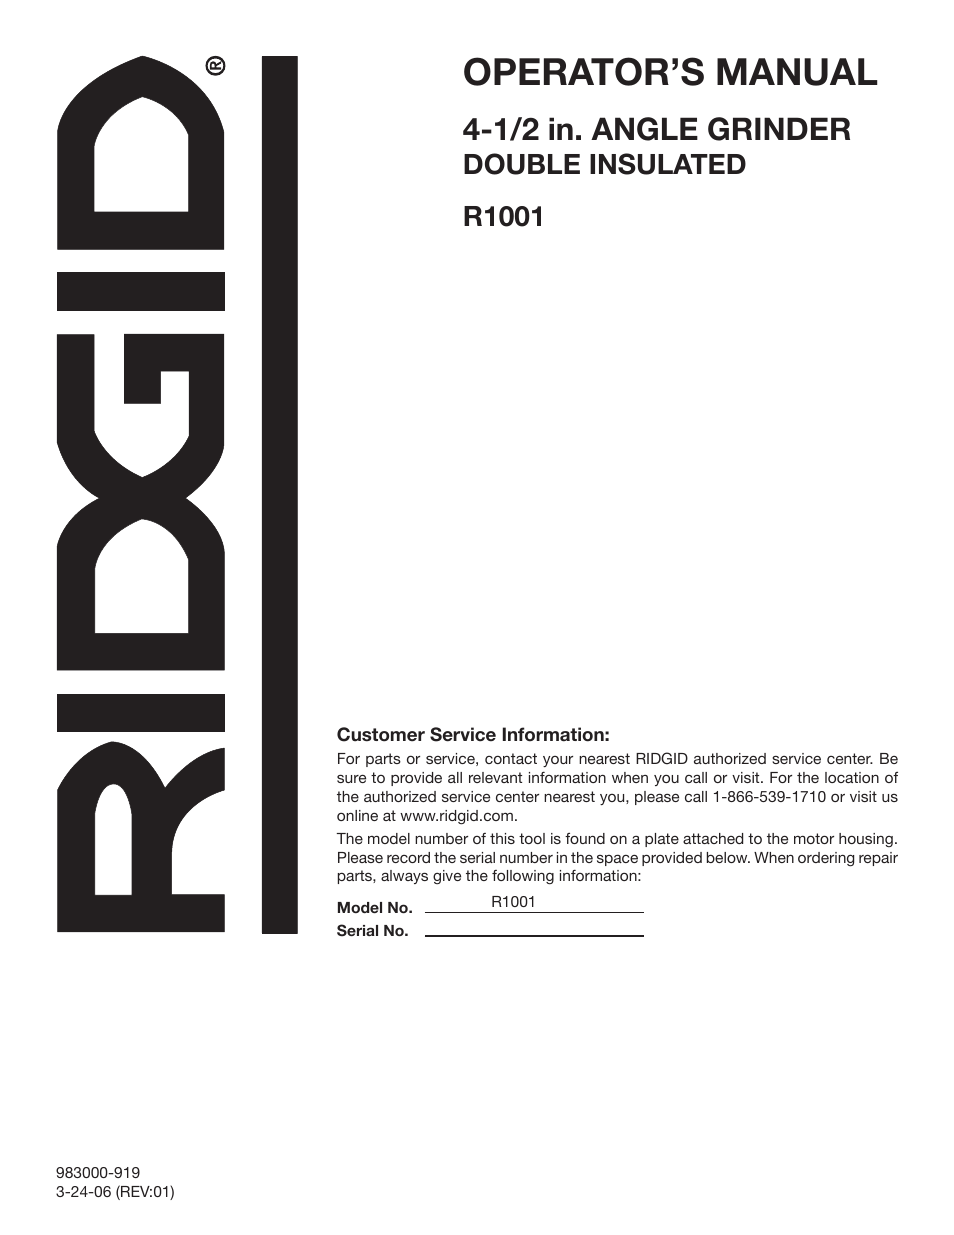 Operator's Manual, 1/2 In. Angle Grinder, Double Insulated